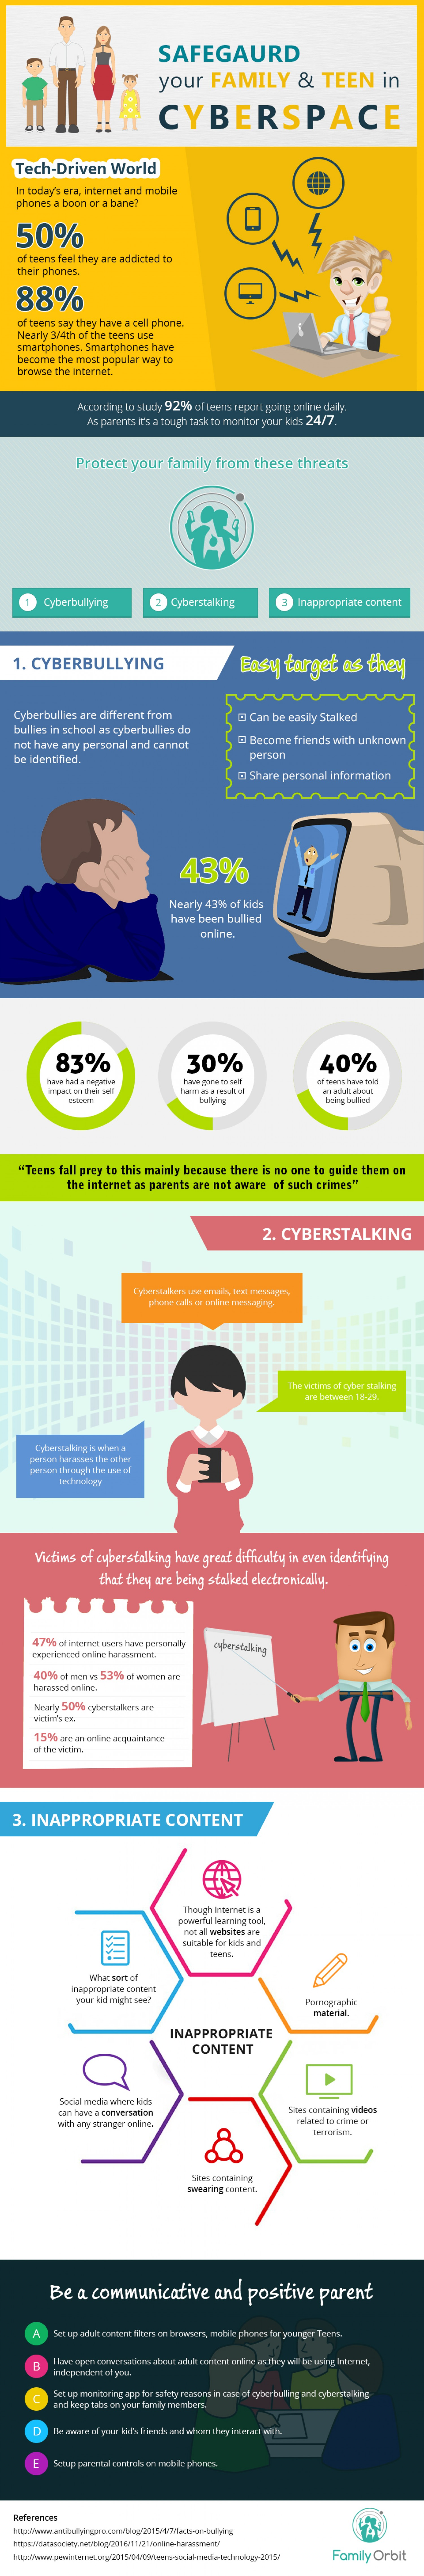 Safeguard Your Family & Teens in the Cyber Space